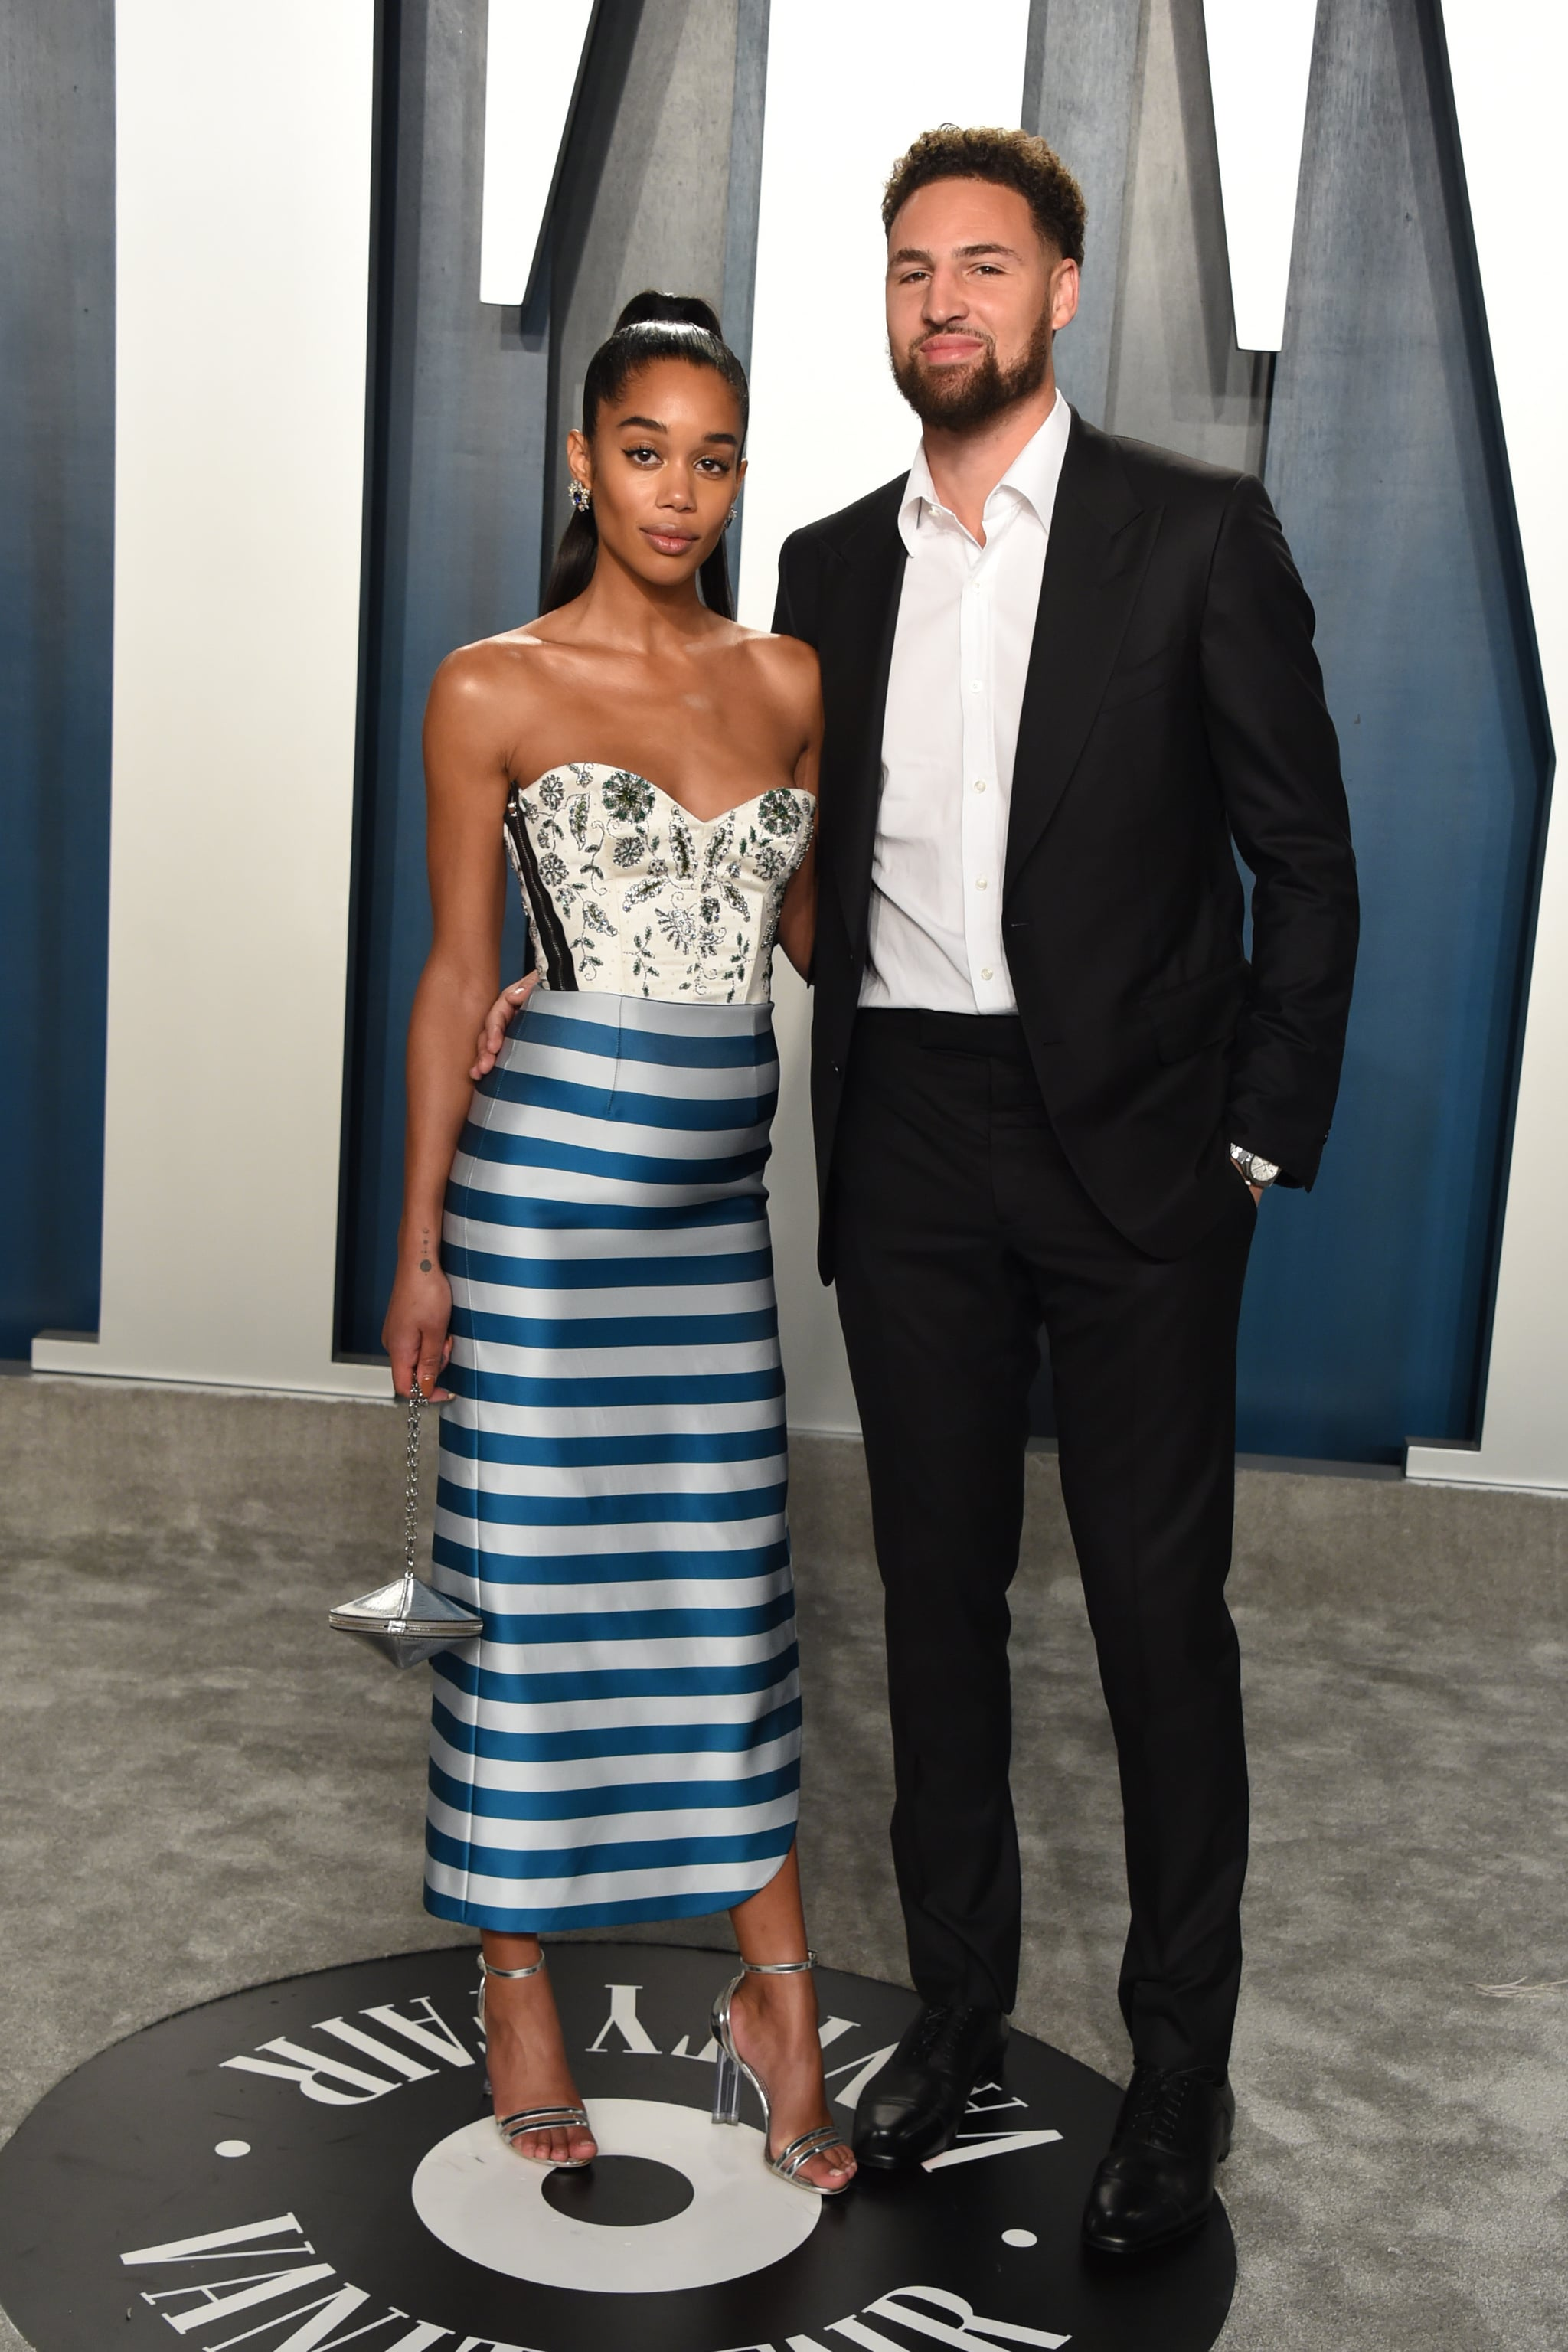 BEVERLY HILLS, CALIFORNIA - FEBRUARY 09: Laura Harrier (L) and Klay Thompson attend the 2020 Vanity Fair Oscar Party hosted by Radhika Jones at Wallis Annenberg Centre for the Performing Arts on February 09, 2020 in Beverly Hills, California. (Photo by John Shearer/Getty Images)